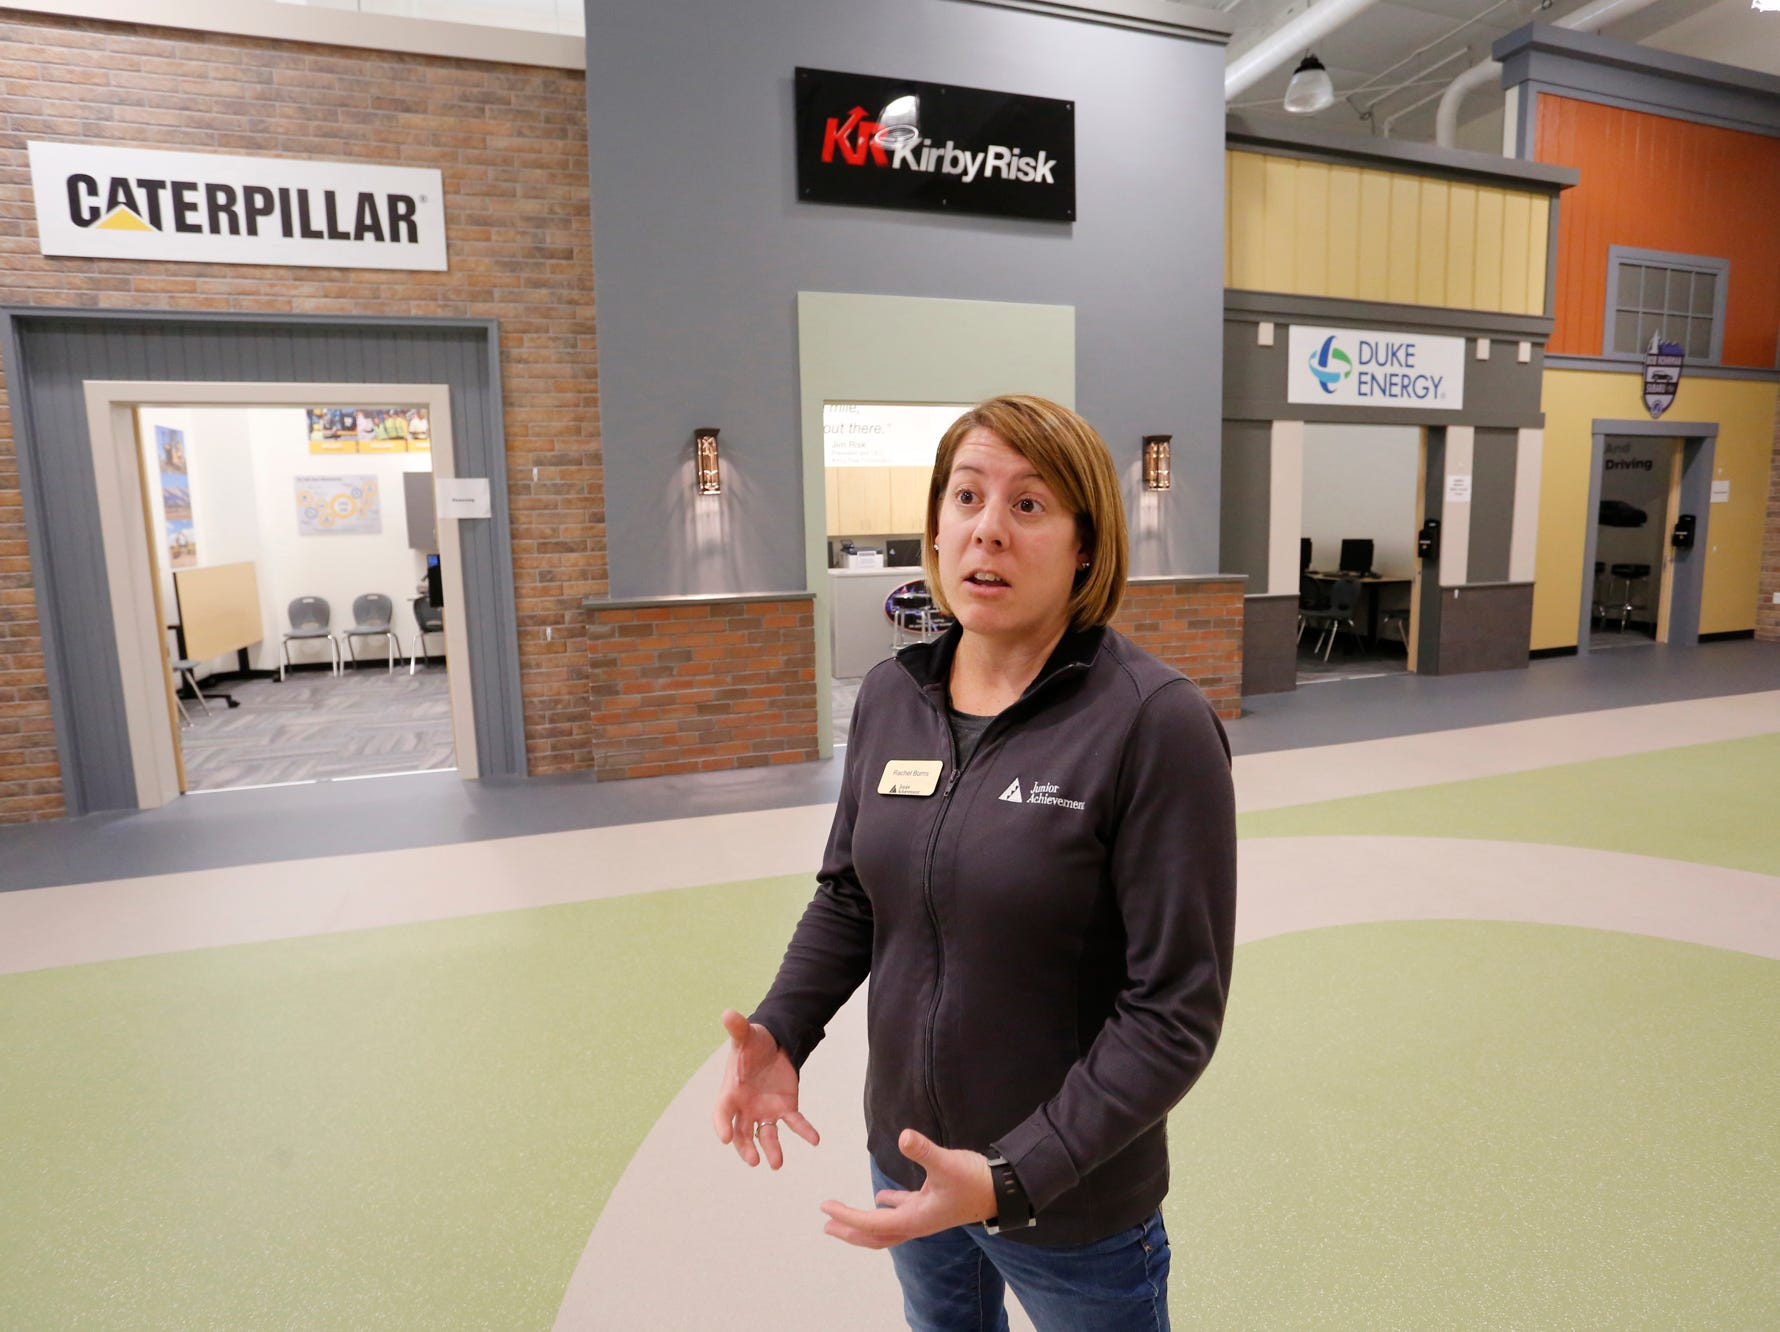 Rachel Burns, director of the Junior Achievement Center, talks about the programs offered Thursday, December 6, 2018, at the new Lafayette Family YMCA, 3001 S. Creasy Lane in Lafayette. The Junior Achievement Center offers BizTown for fifth and sixth graders, and Finance Park for student eighth grade and older. Both programs introduce students to real life business situations to help develop skills such as personal finance and management.